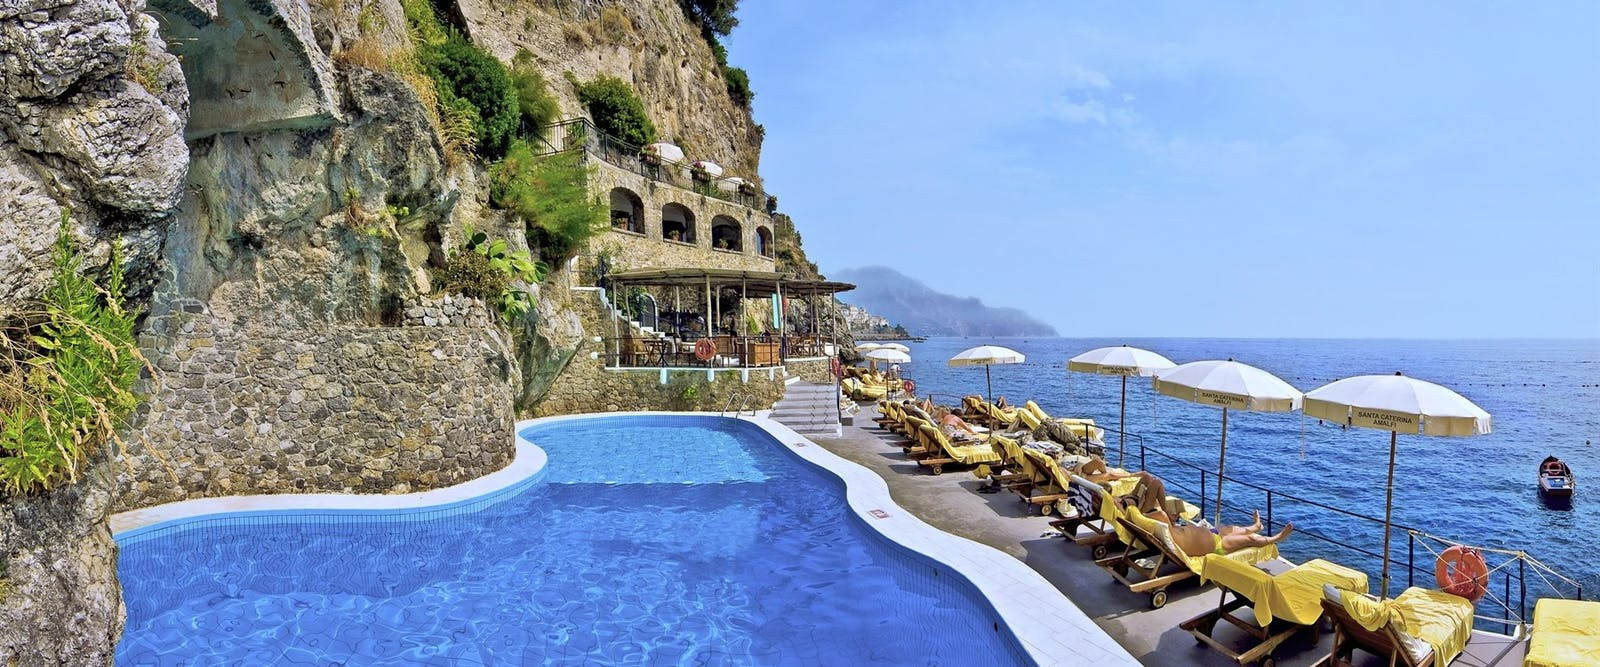 Pool at Hotel Santa Caterina, Amalfi Coast, Italy